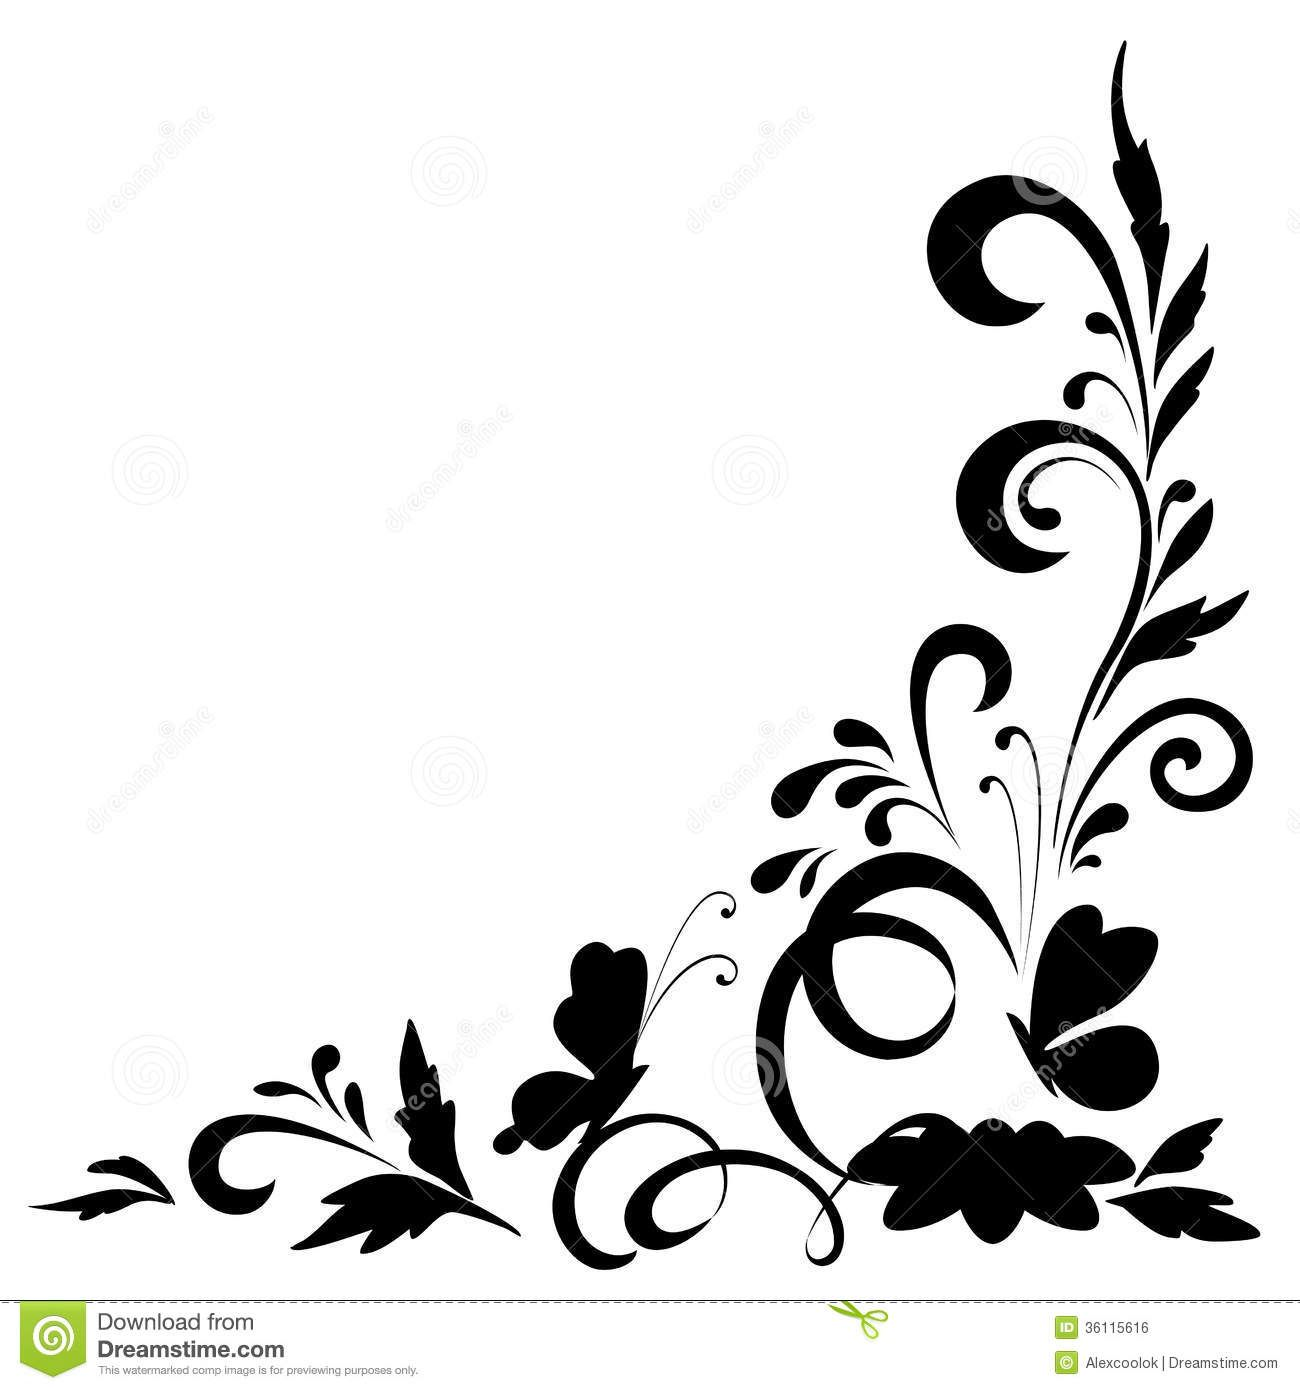 Abstract floral background butterfly background black and white abstract floral background butterfly background black and white mightylinksfo